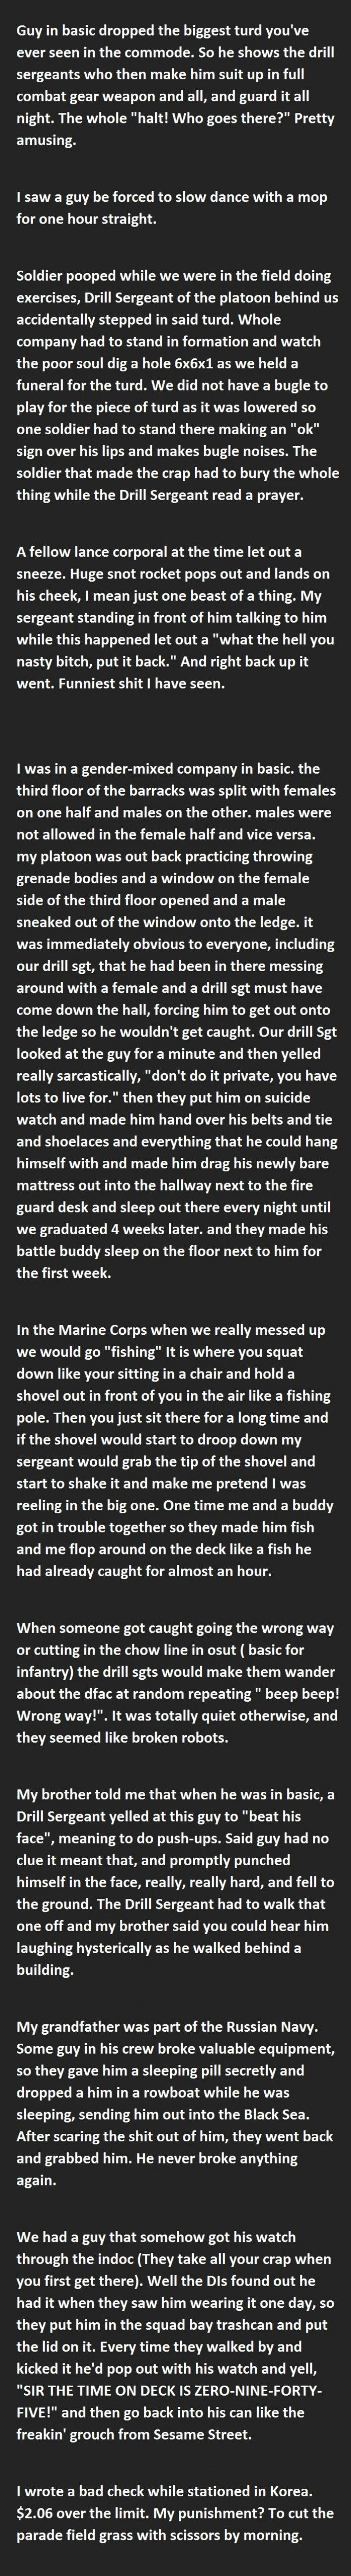 20 Funny Military Punishments Part 2